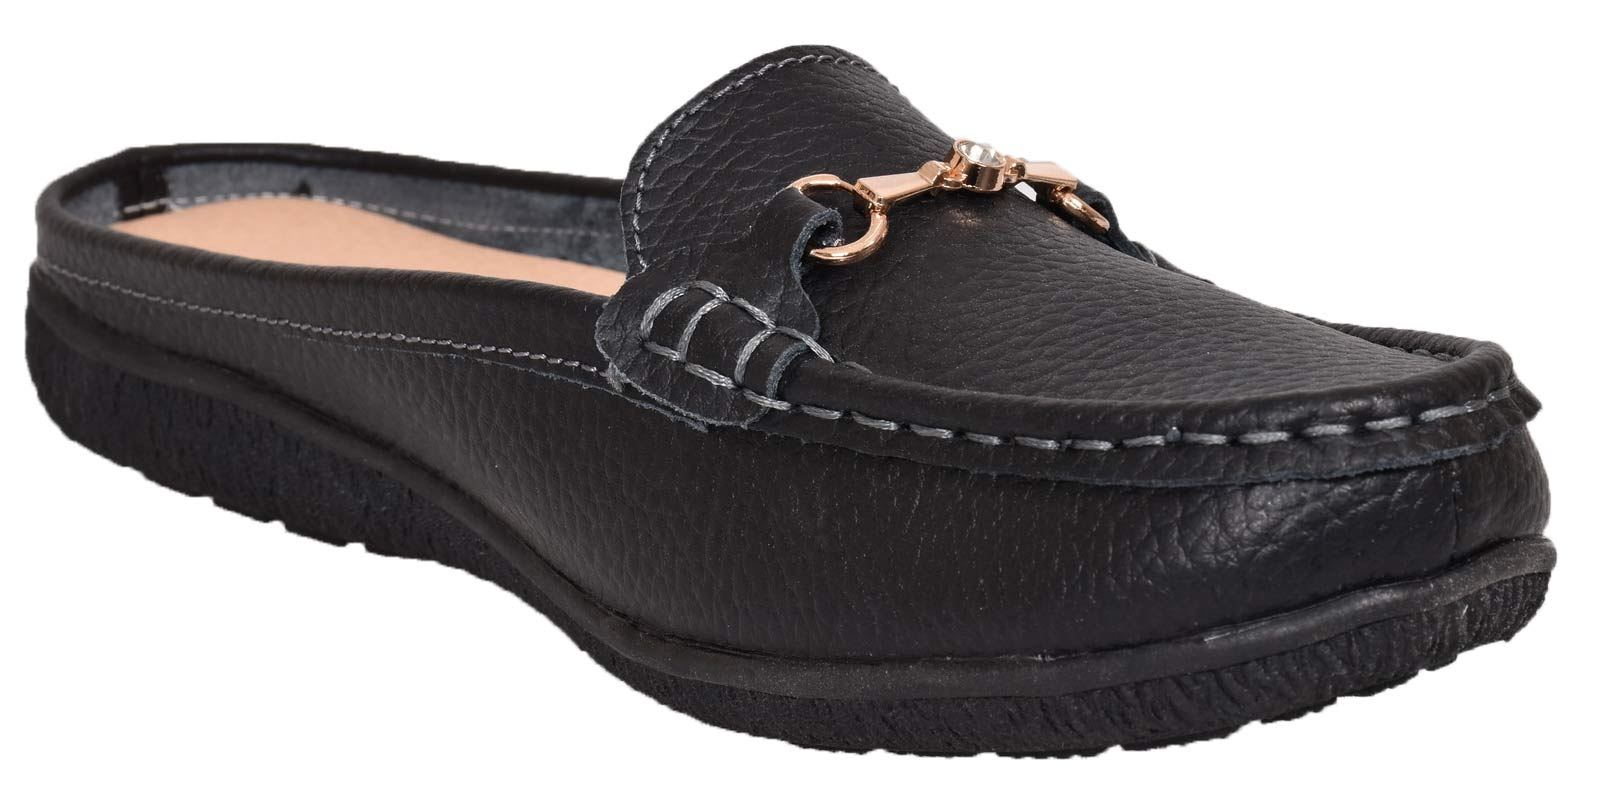 Ladies-Leather-Loafer-Mules-Comfort-Shoes-Womens-Slider-Moccasins-Shoes thumbnail 15